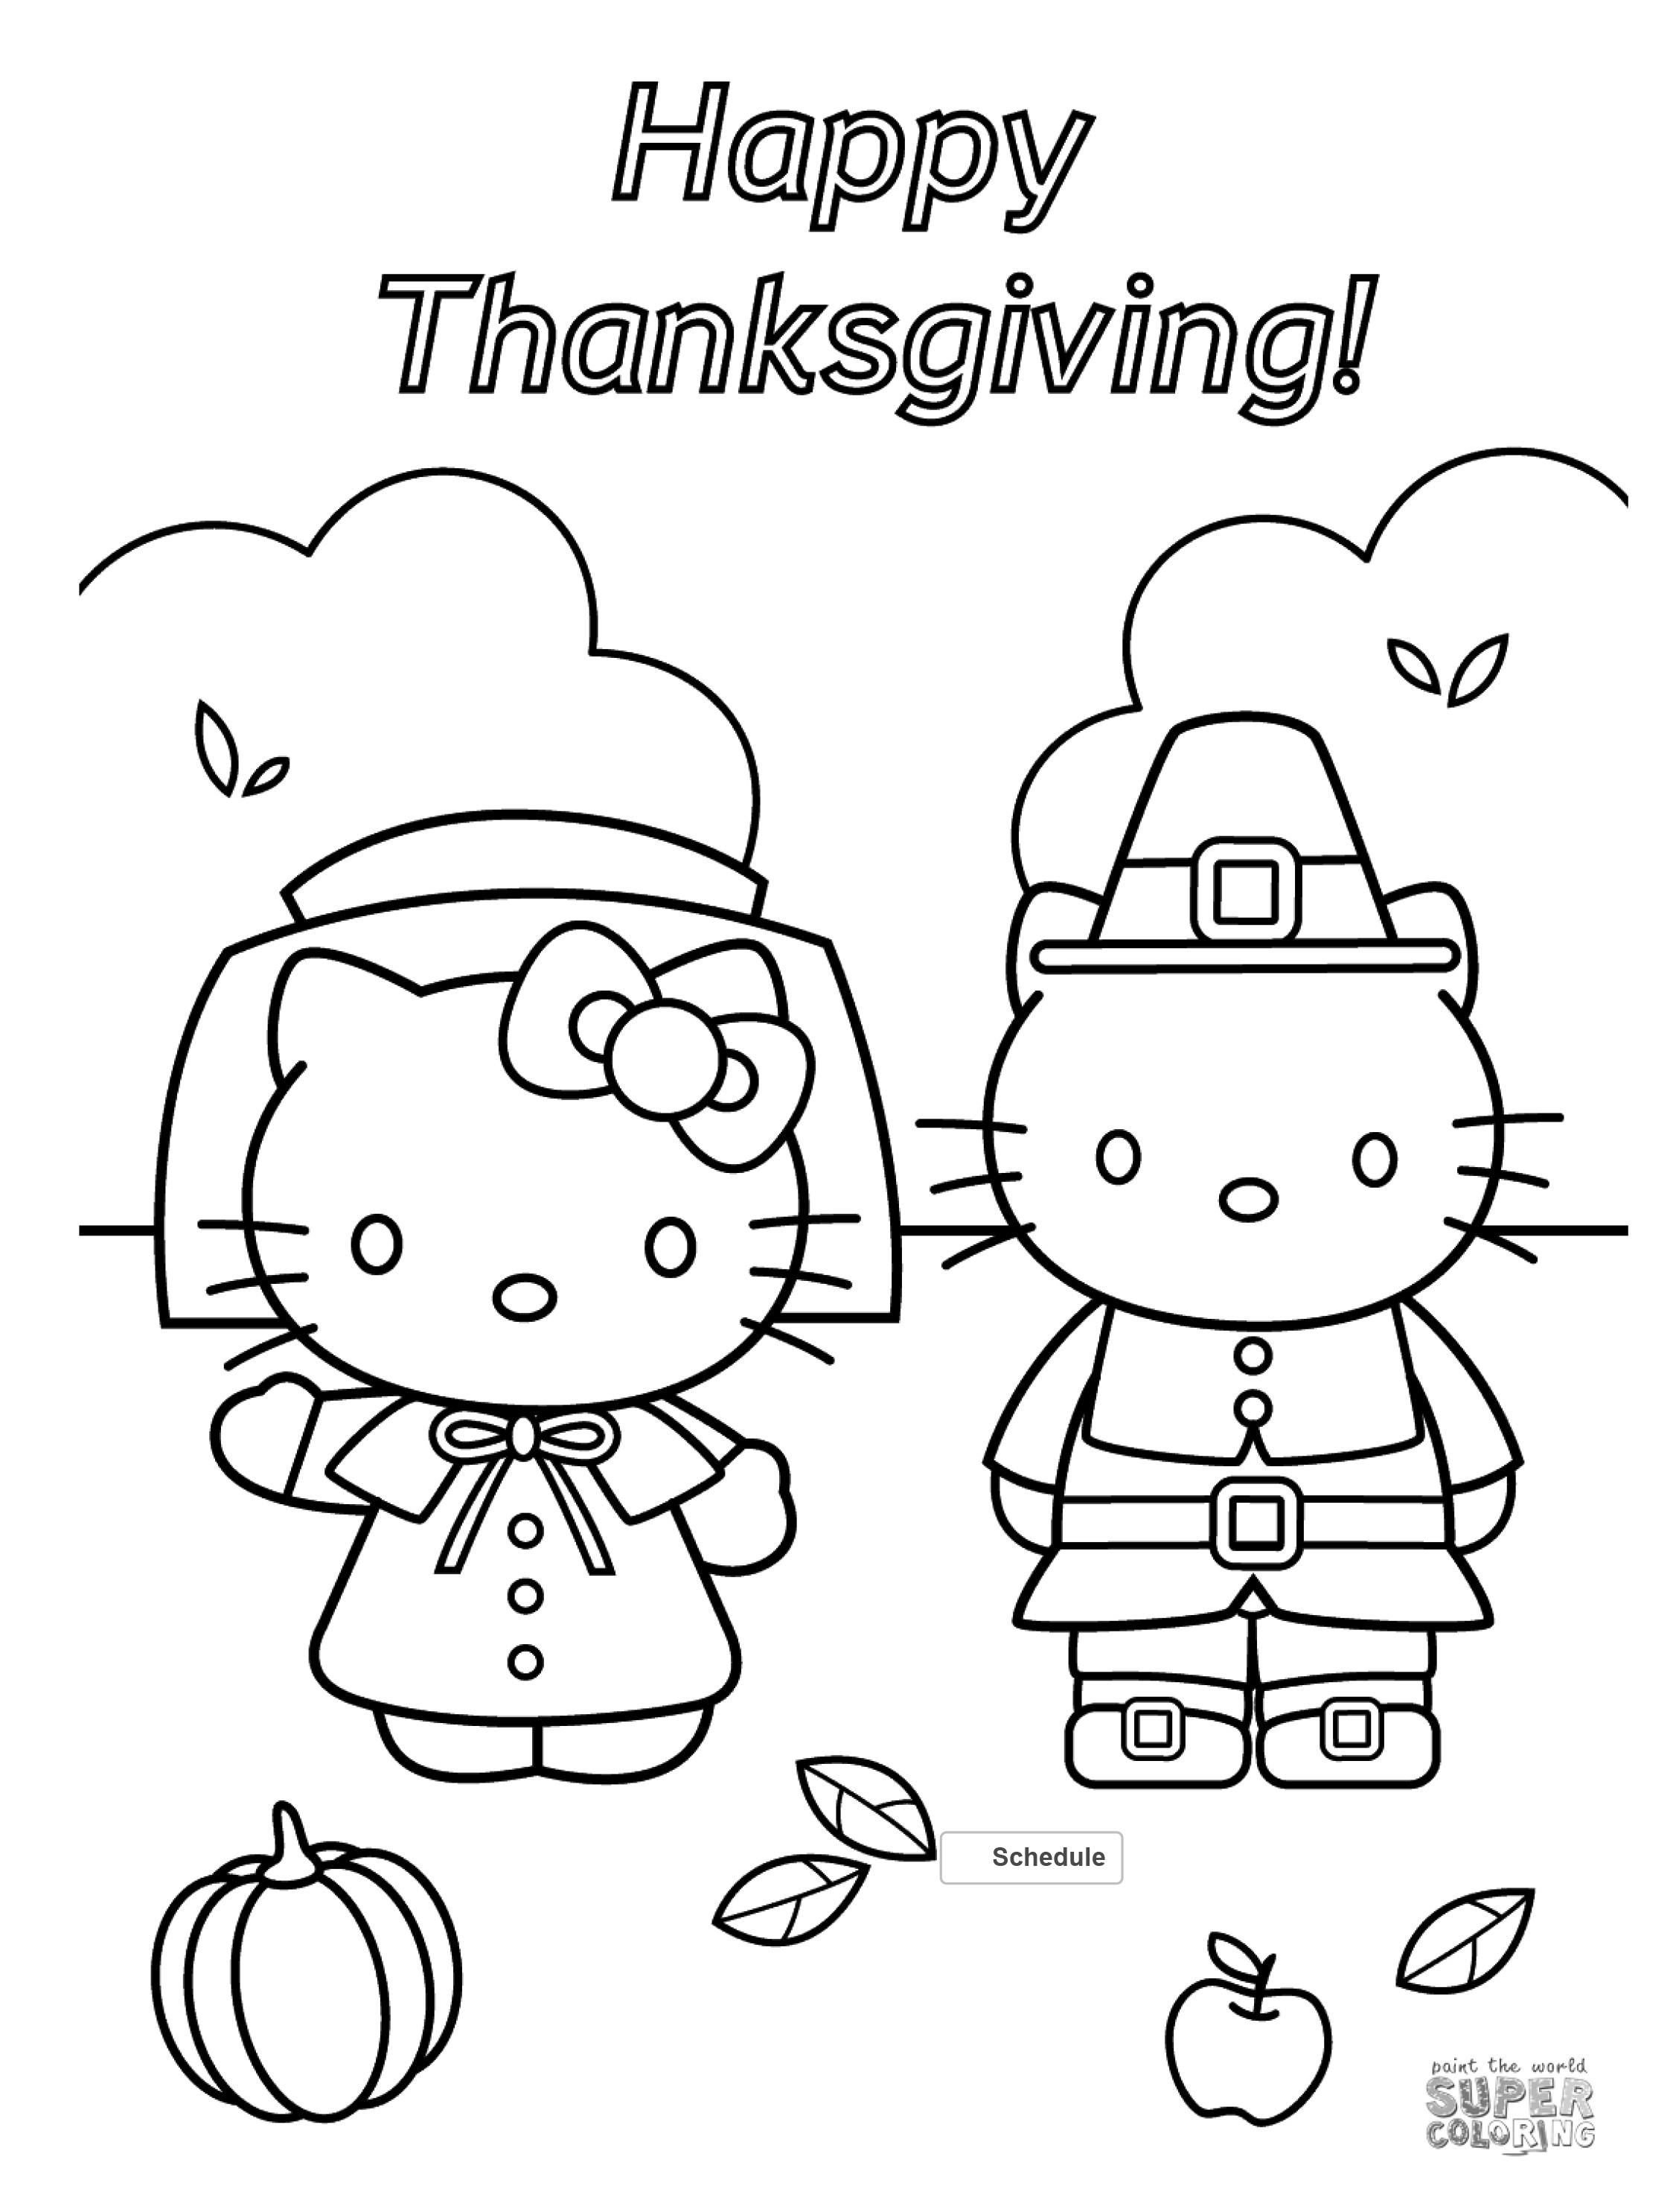 Free Thanksgiving Coloring Pages For Adults & Kids - Happiness Is - Free Printable Thanksgiving Coloring Placemats